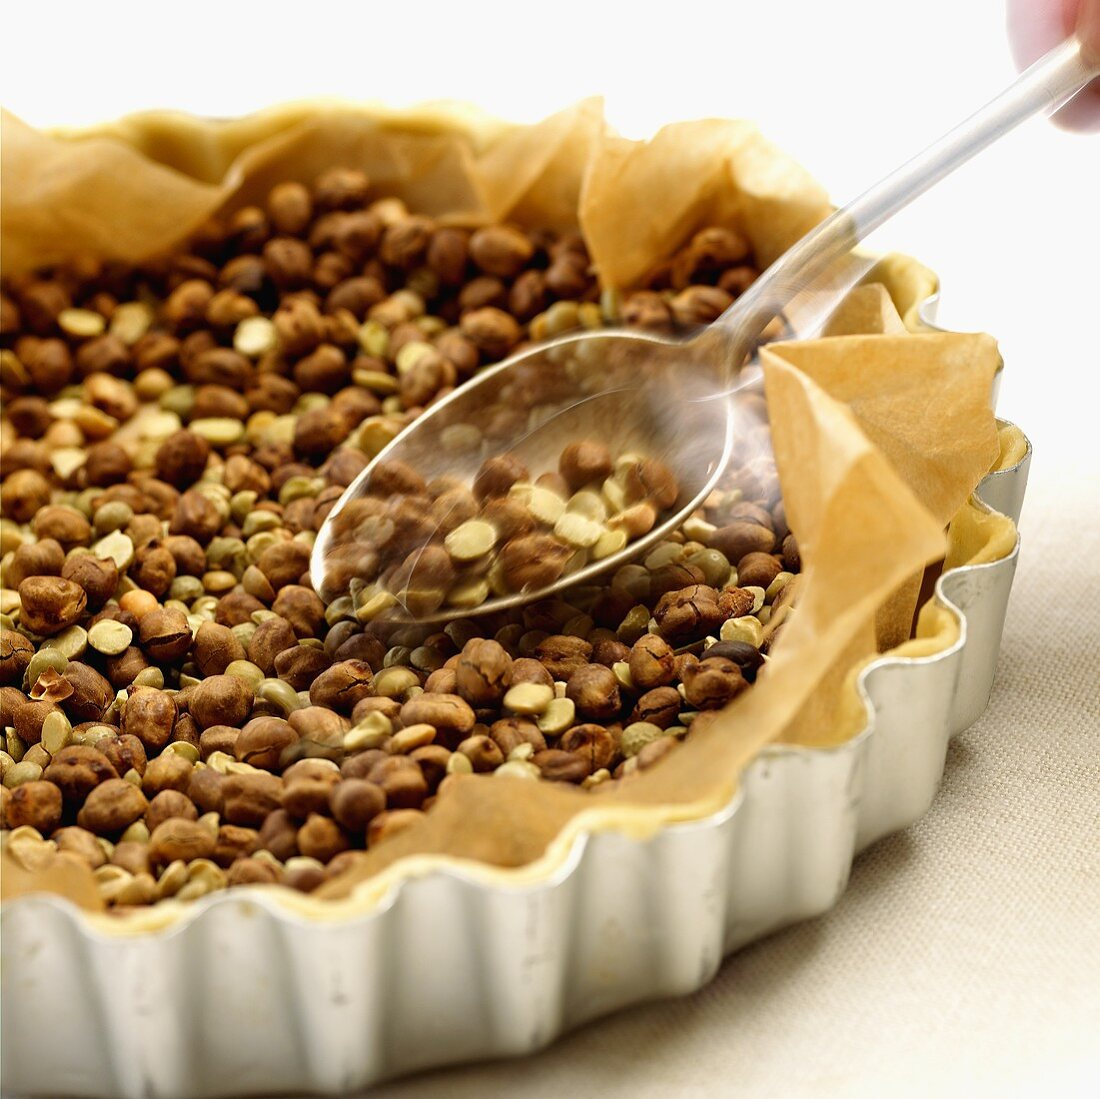 Baking pastry blind in a tart tin